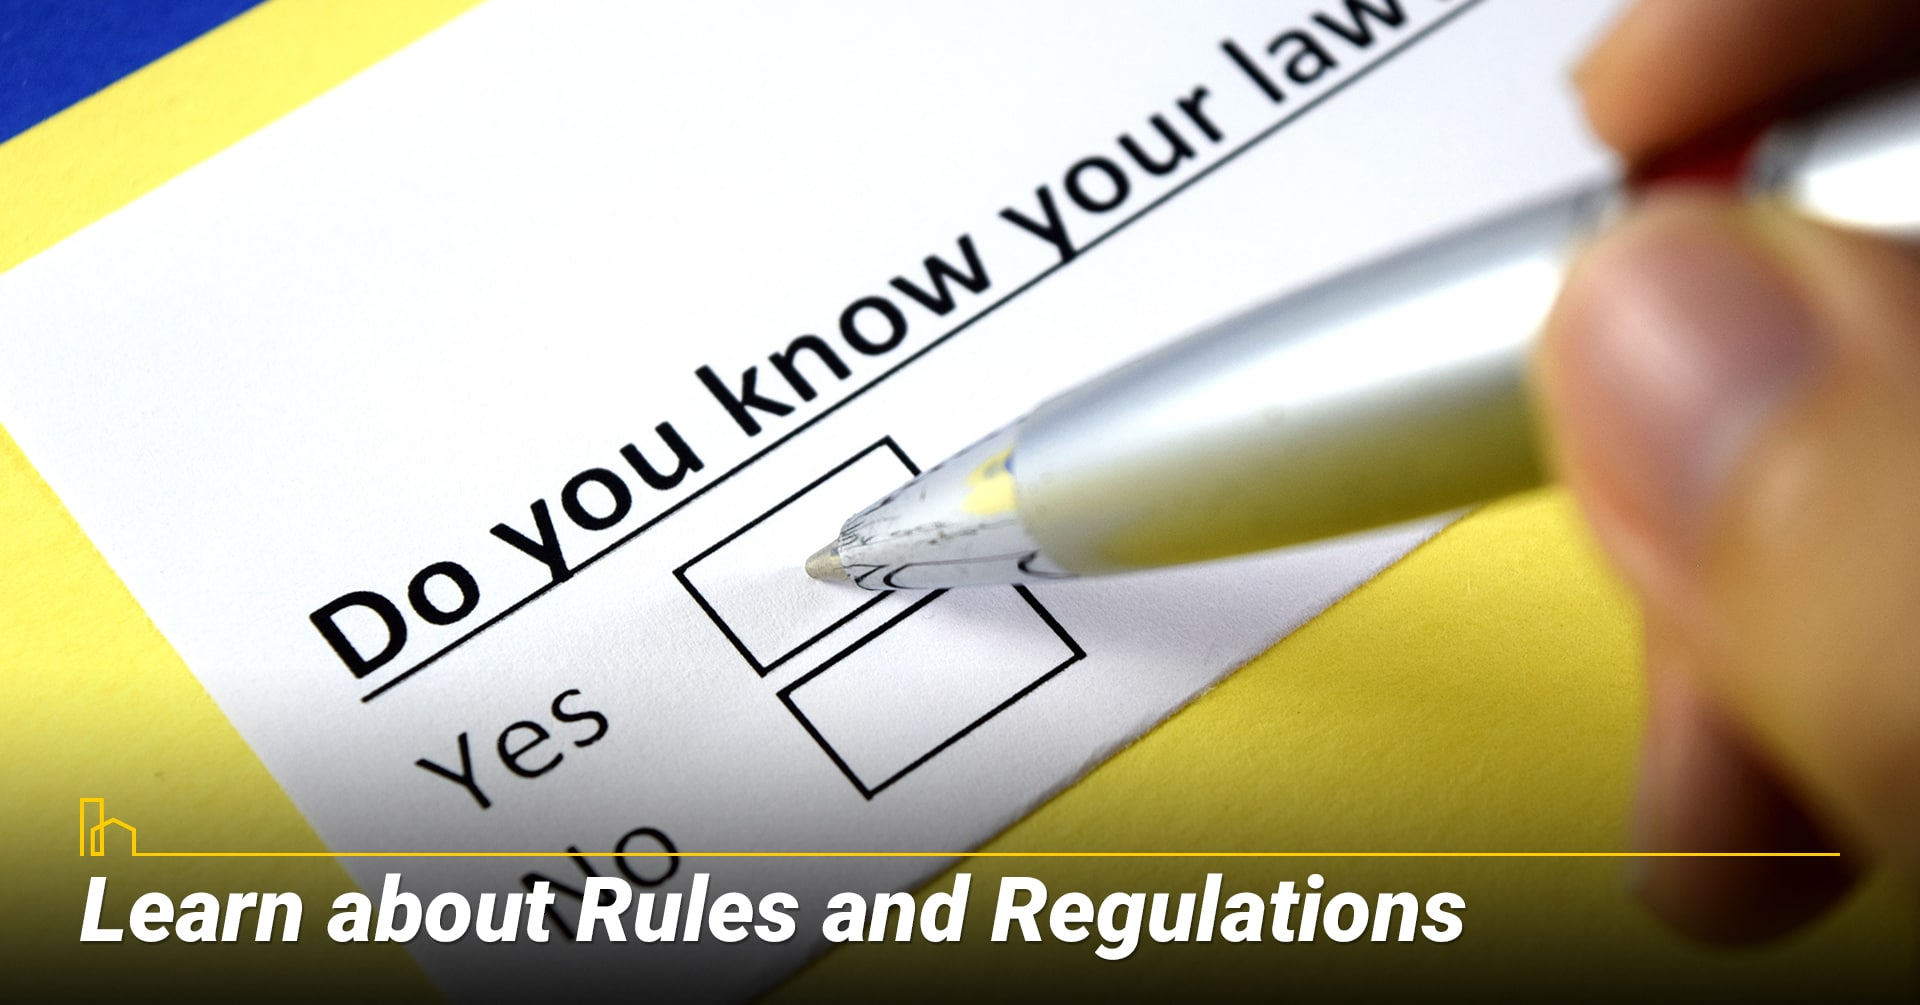 Learn about Rules and Regulations, learn about local laws